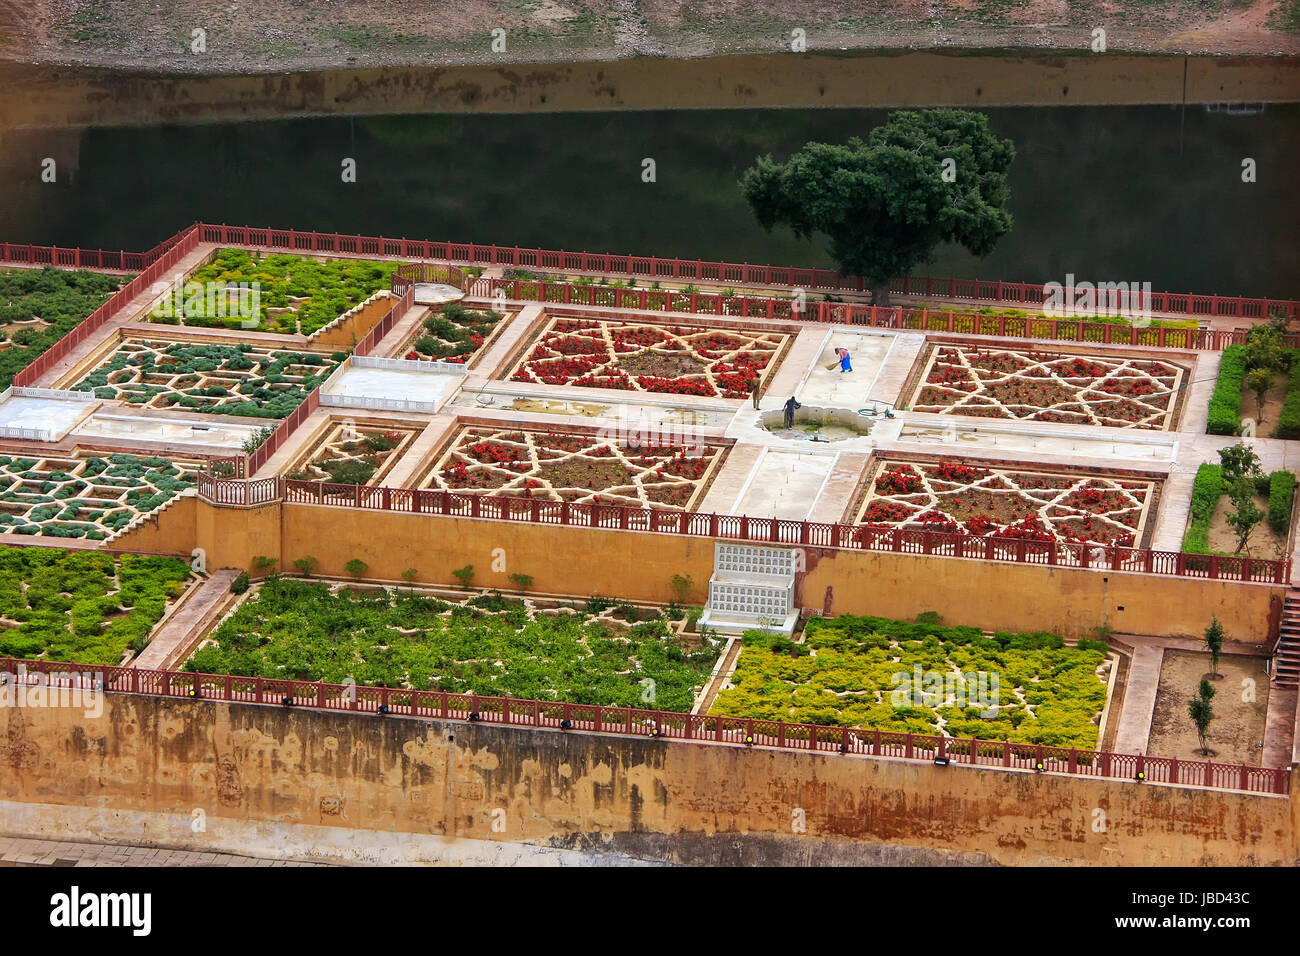 Close view of Kesar Kyari (Saffron Garden) on Maota Lake from Amber Fort, Rajasthan, India. Amber Fort is the main - Stock Image